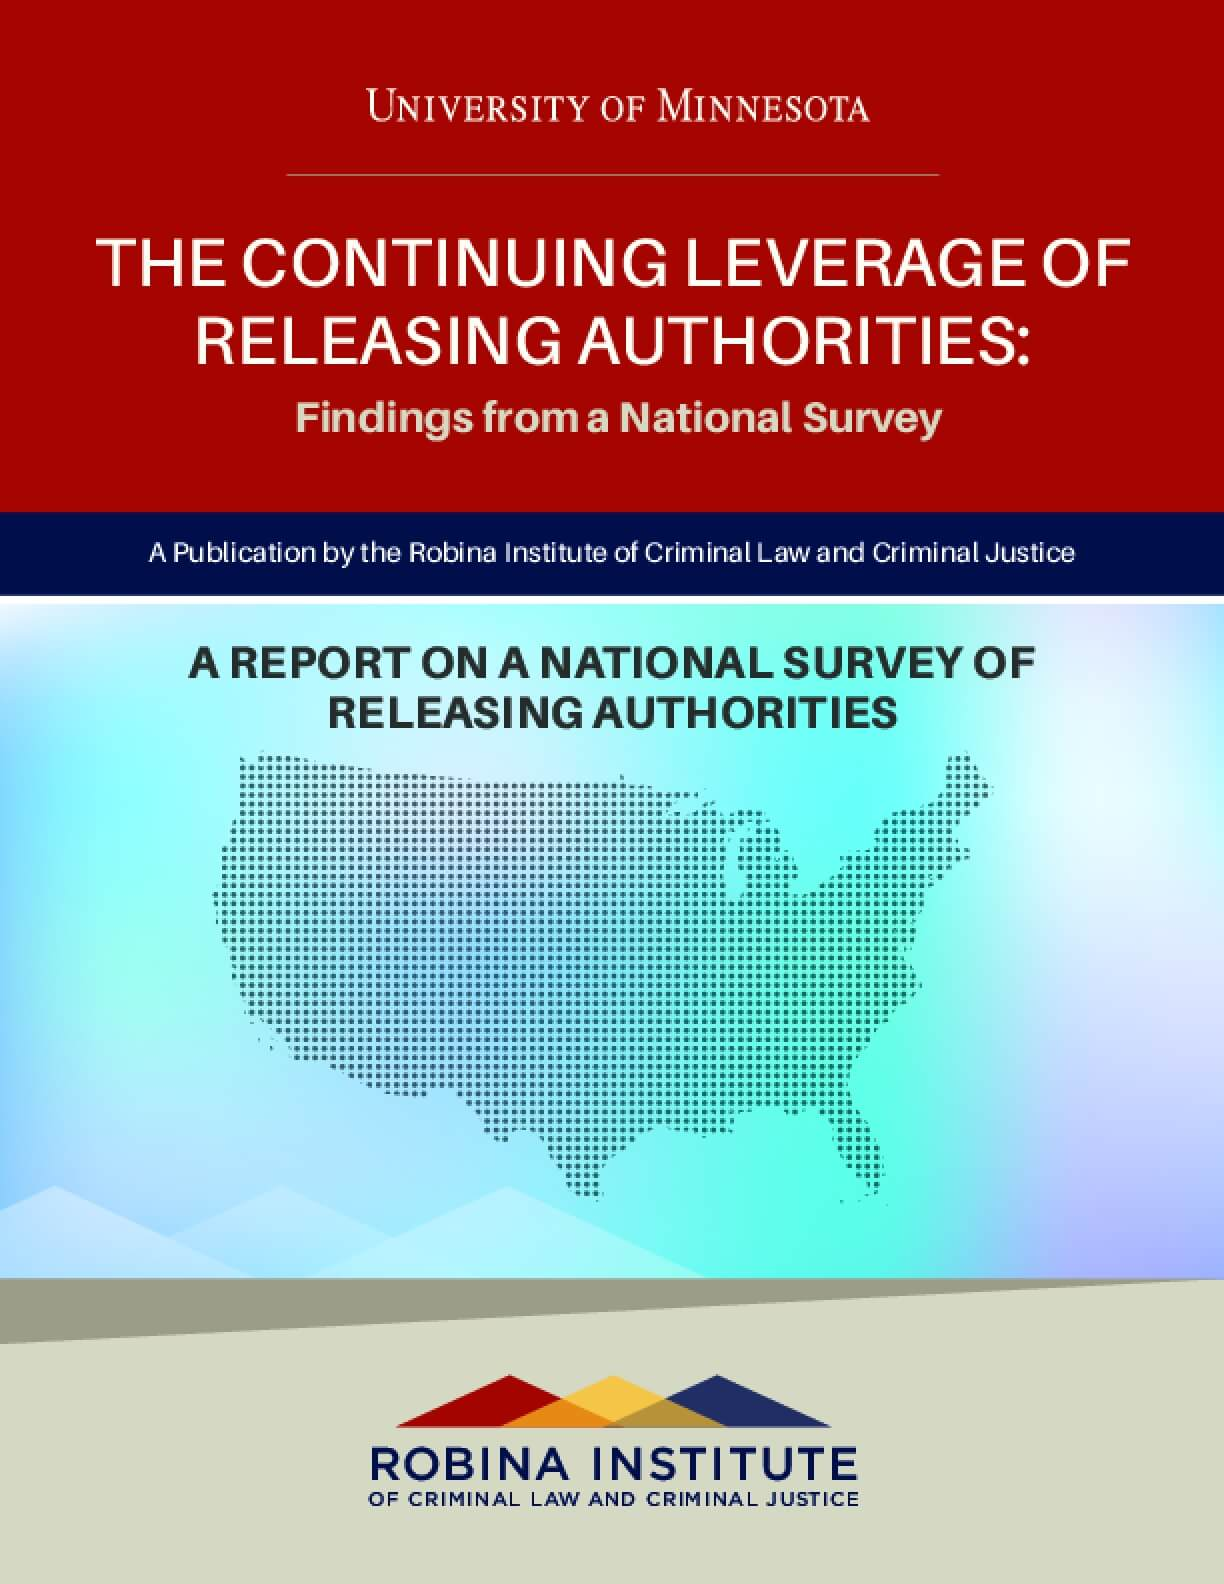 The Continuing Leverage of Releasing Authorities: Findings from a National Survey